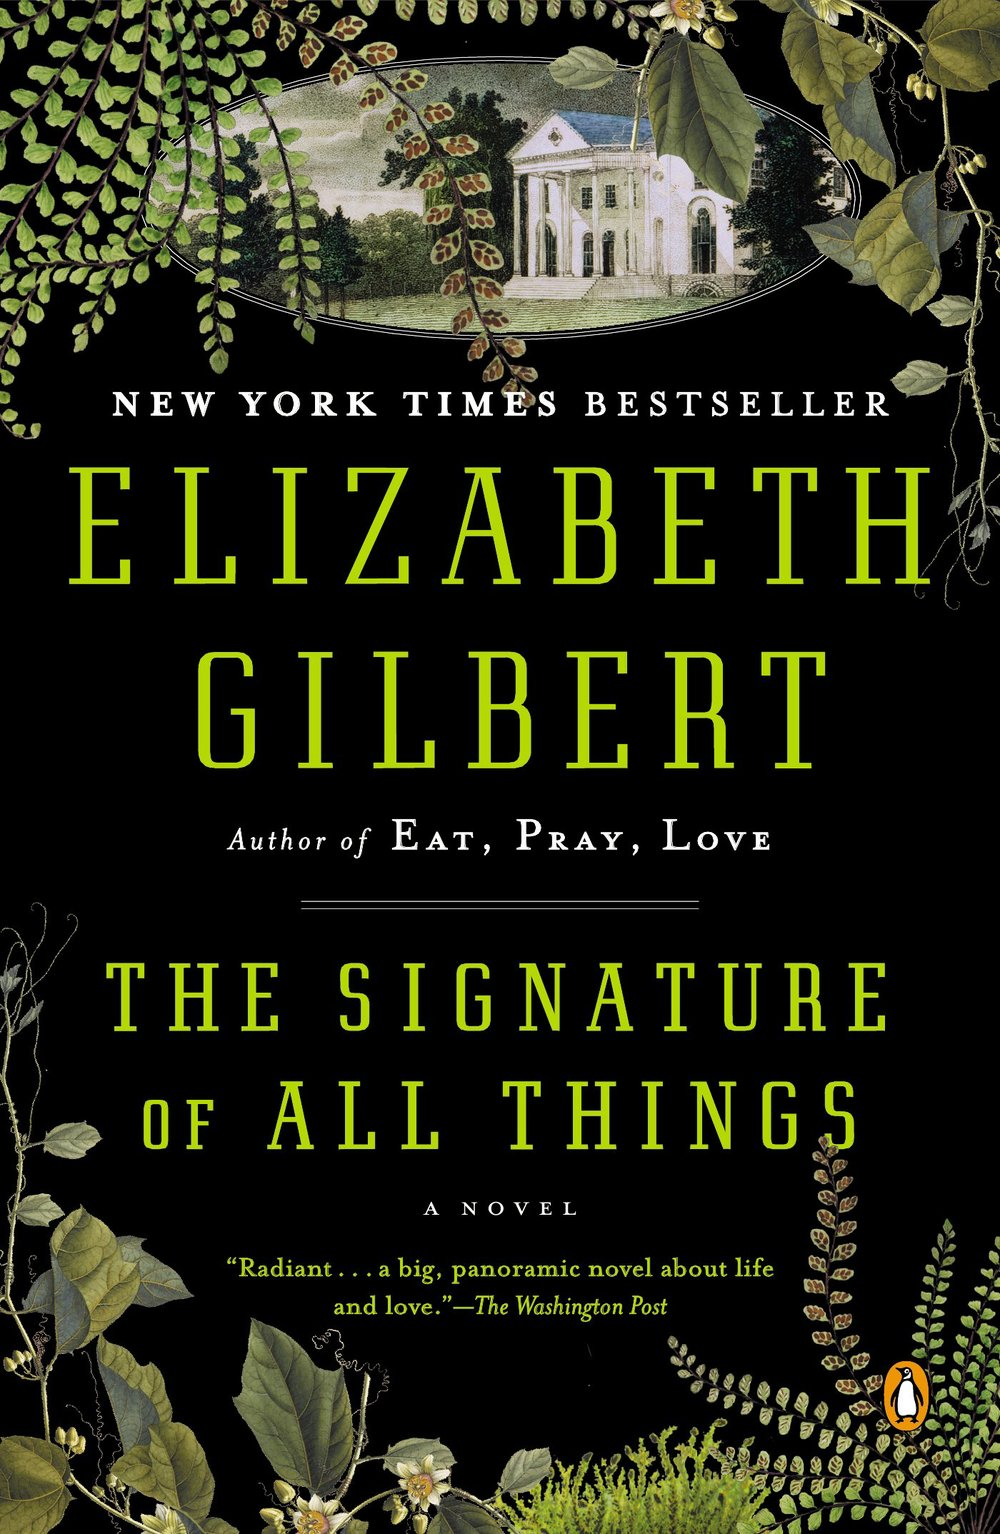 TheWoodlands_Signature-of-all-Things_Elizabeth-Gilbert